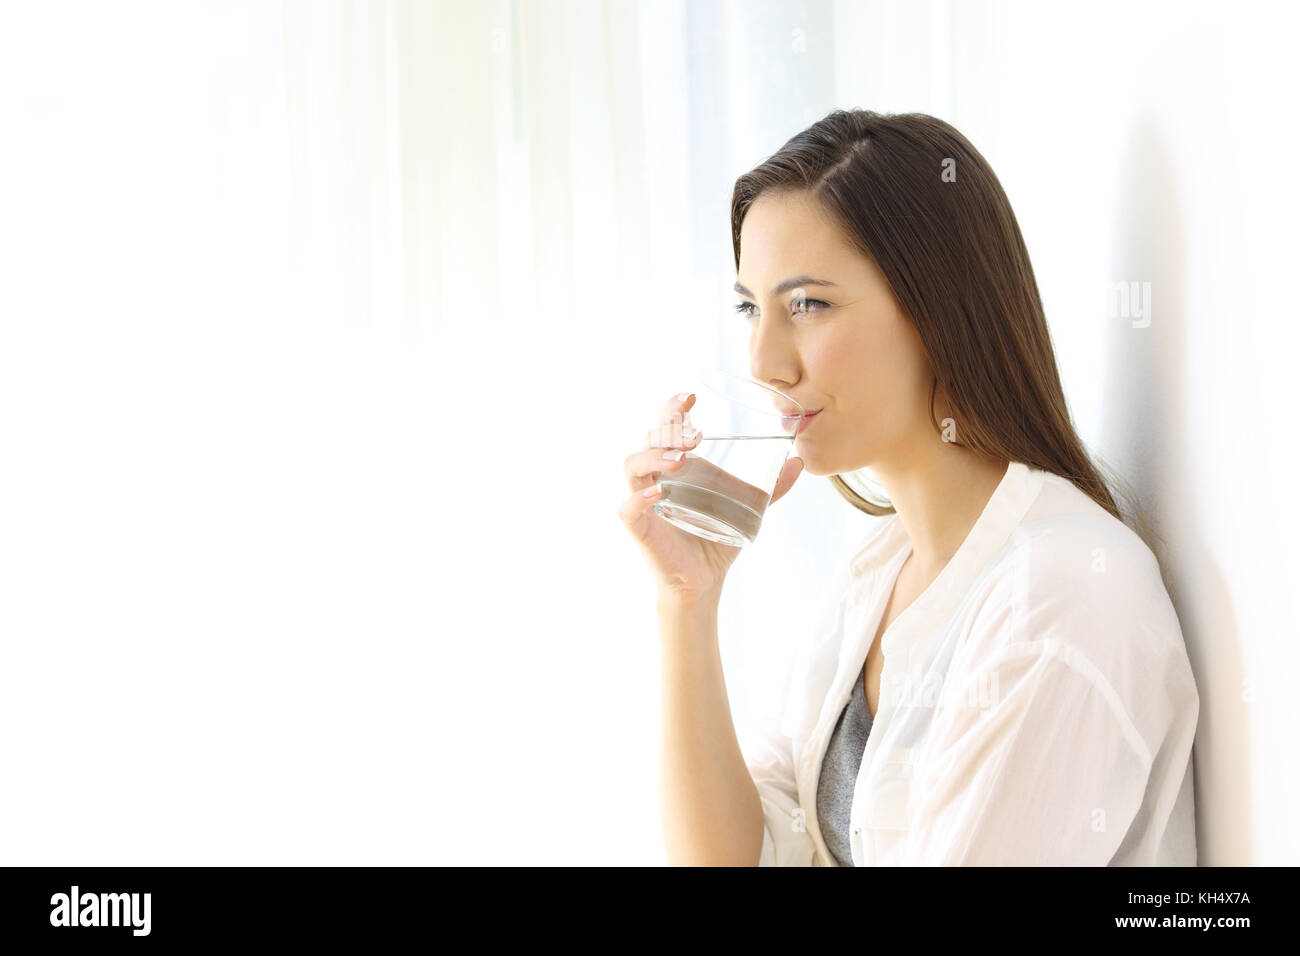 Portrait of a happy woman drinking water from a glass isolated on white at side - Stock Image